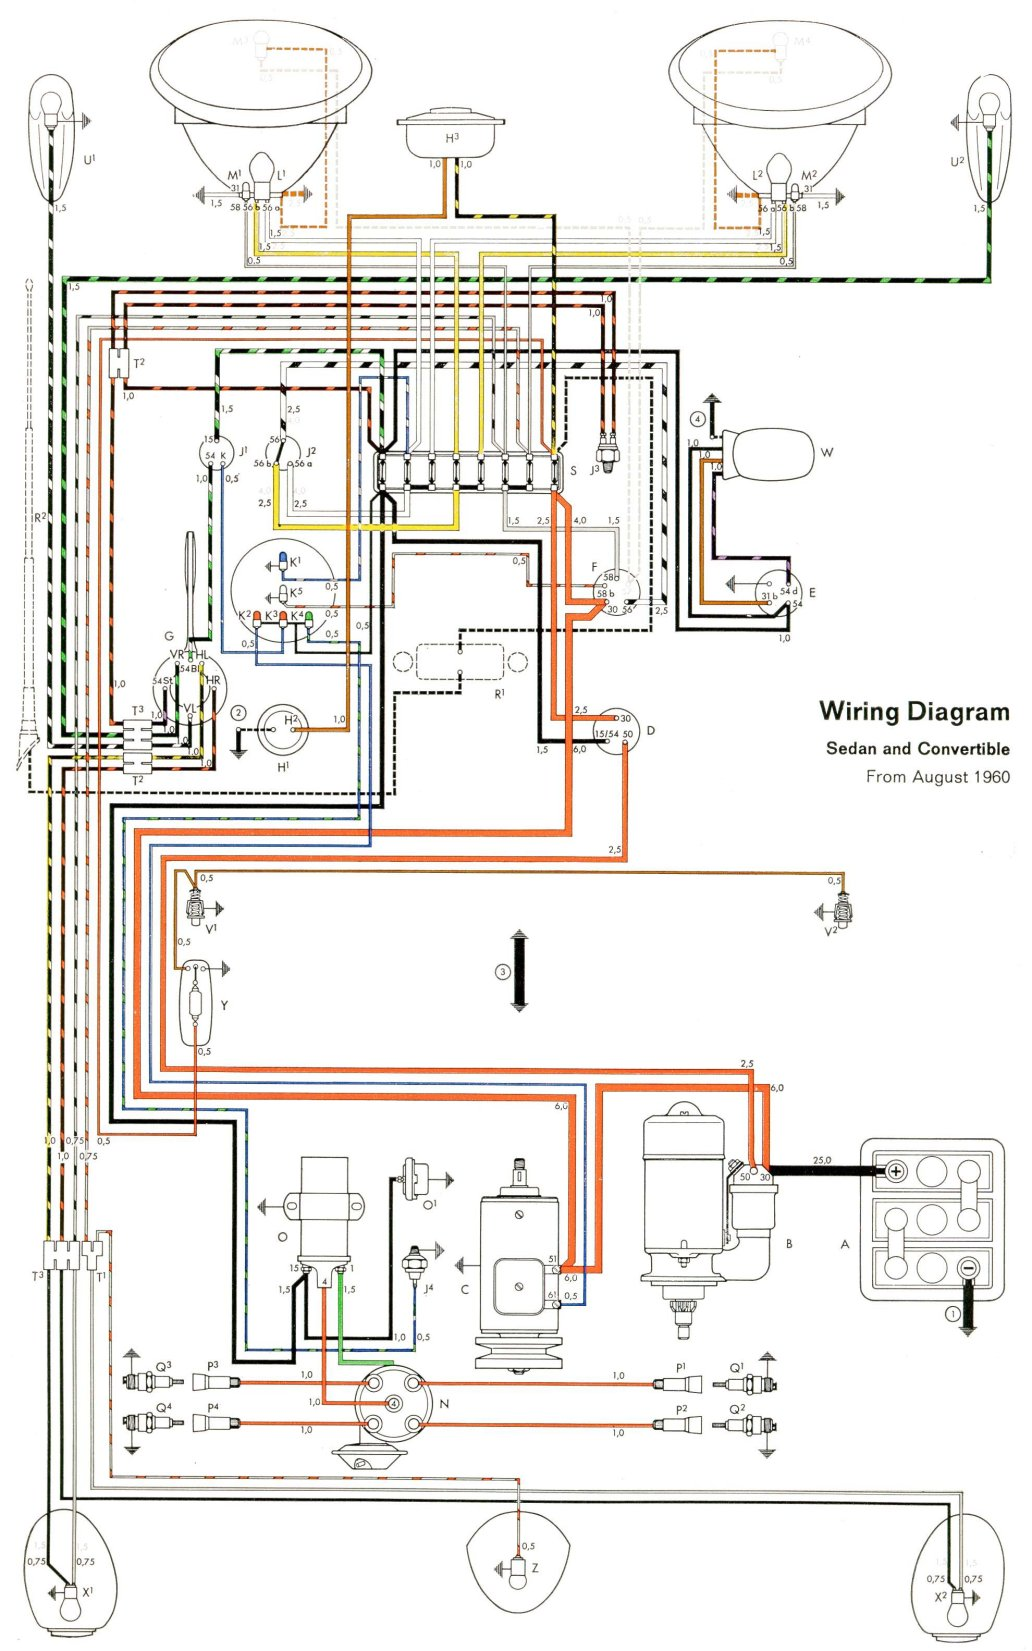 1972 vw wiring diagram wiring diagram1972 vw wiring diagram